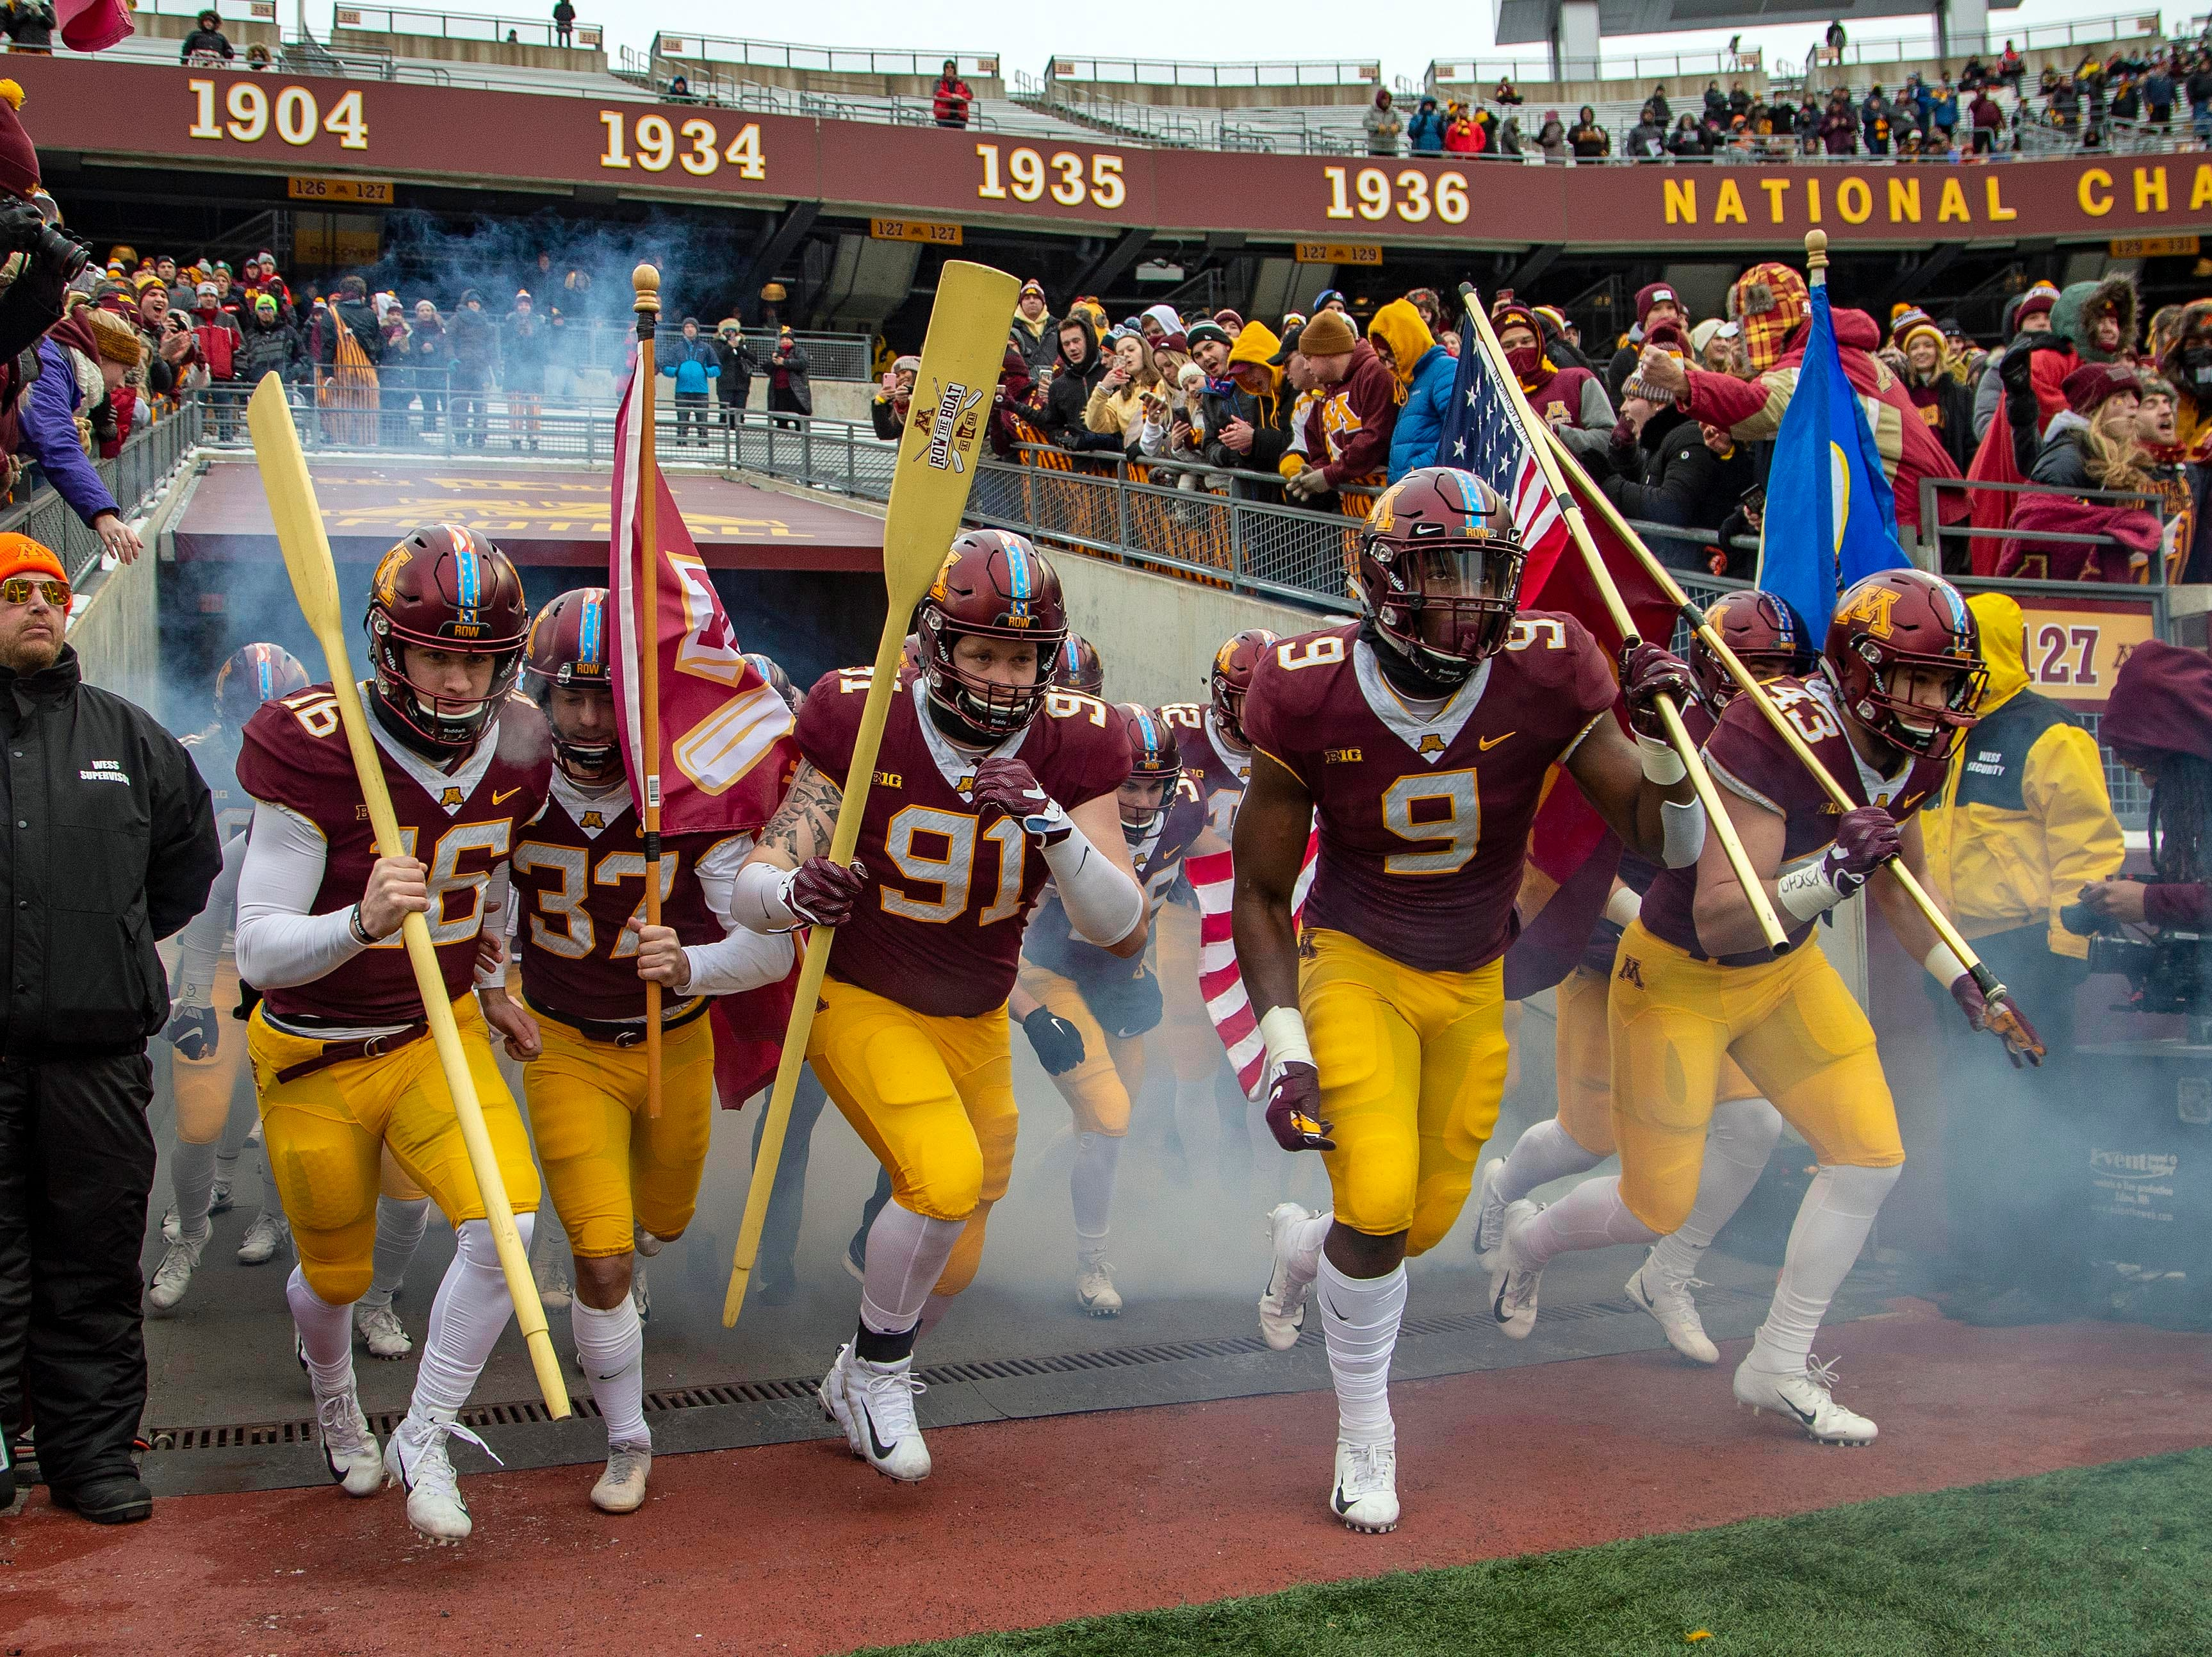 Nov 10, 2018; Minneapolis, MN, USA; Minnesota Golden Gophers run onto the field before a game against the Purdue Boilermakers at TCF Bank Stadium. Mandatory Credit: Jesse Johnson-USA TODAY Sports